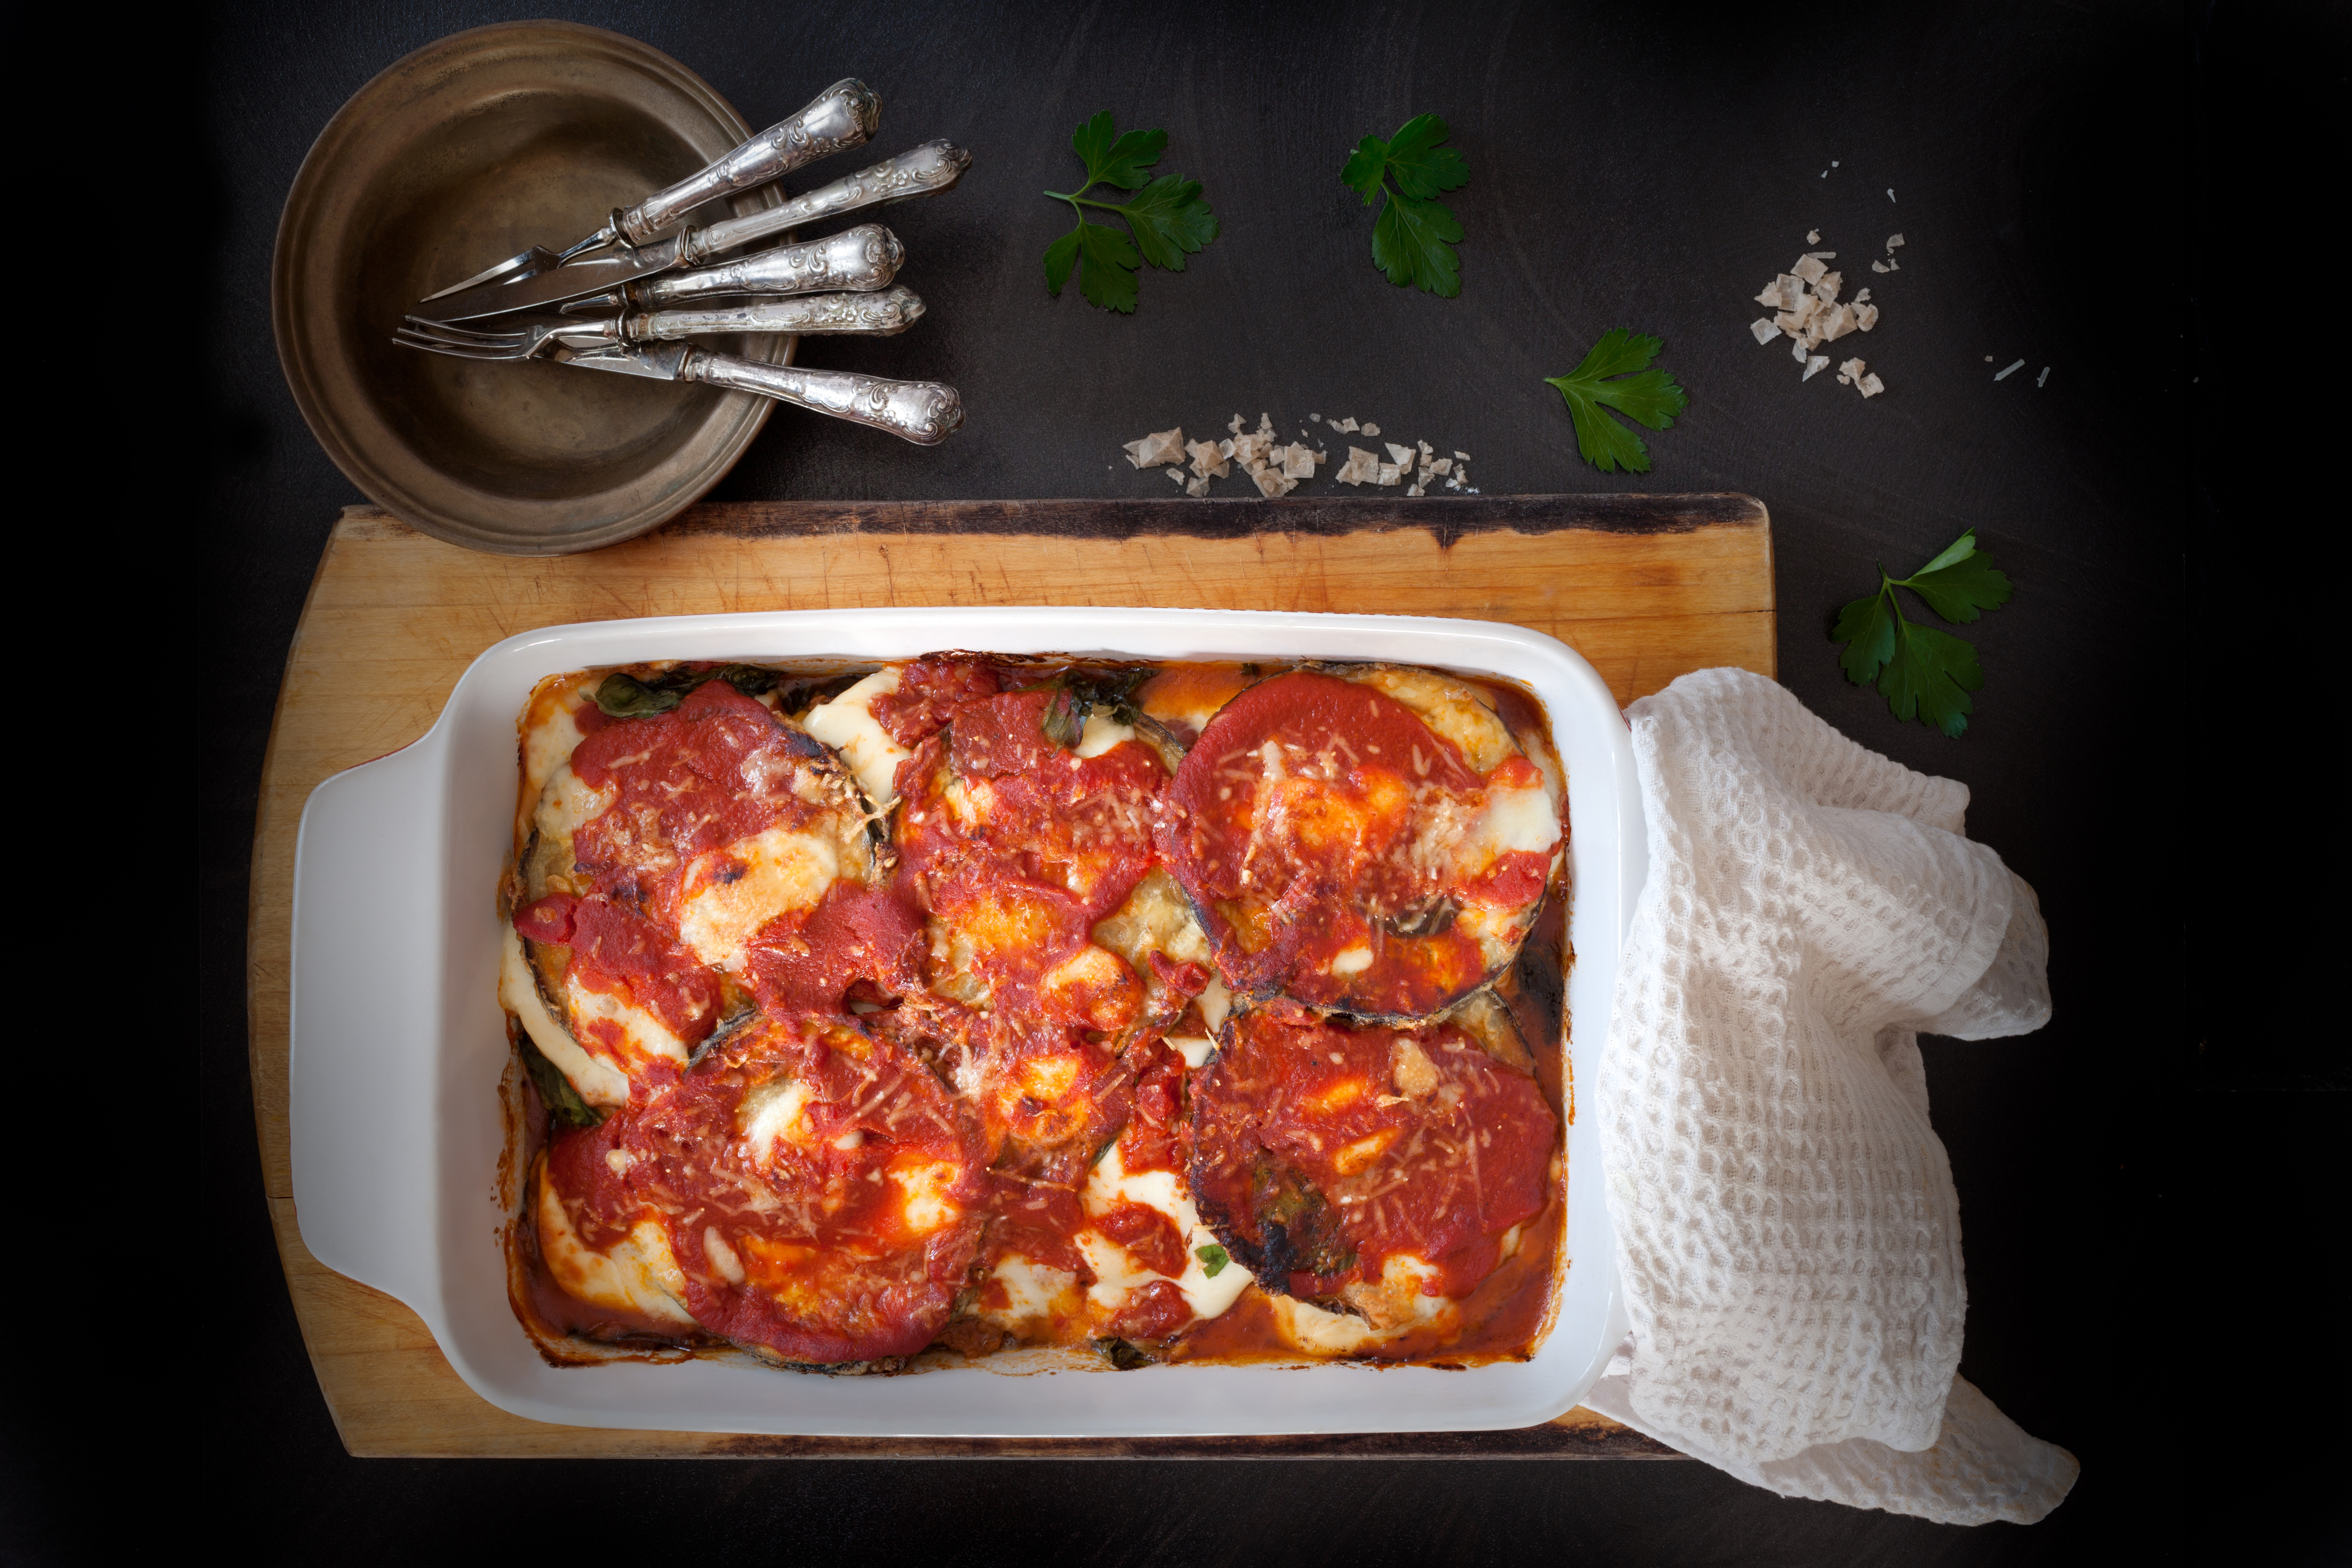 Top view of baking pan with eggplant parmigiana, typical recipe of the Italian cuisine.